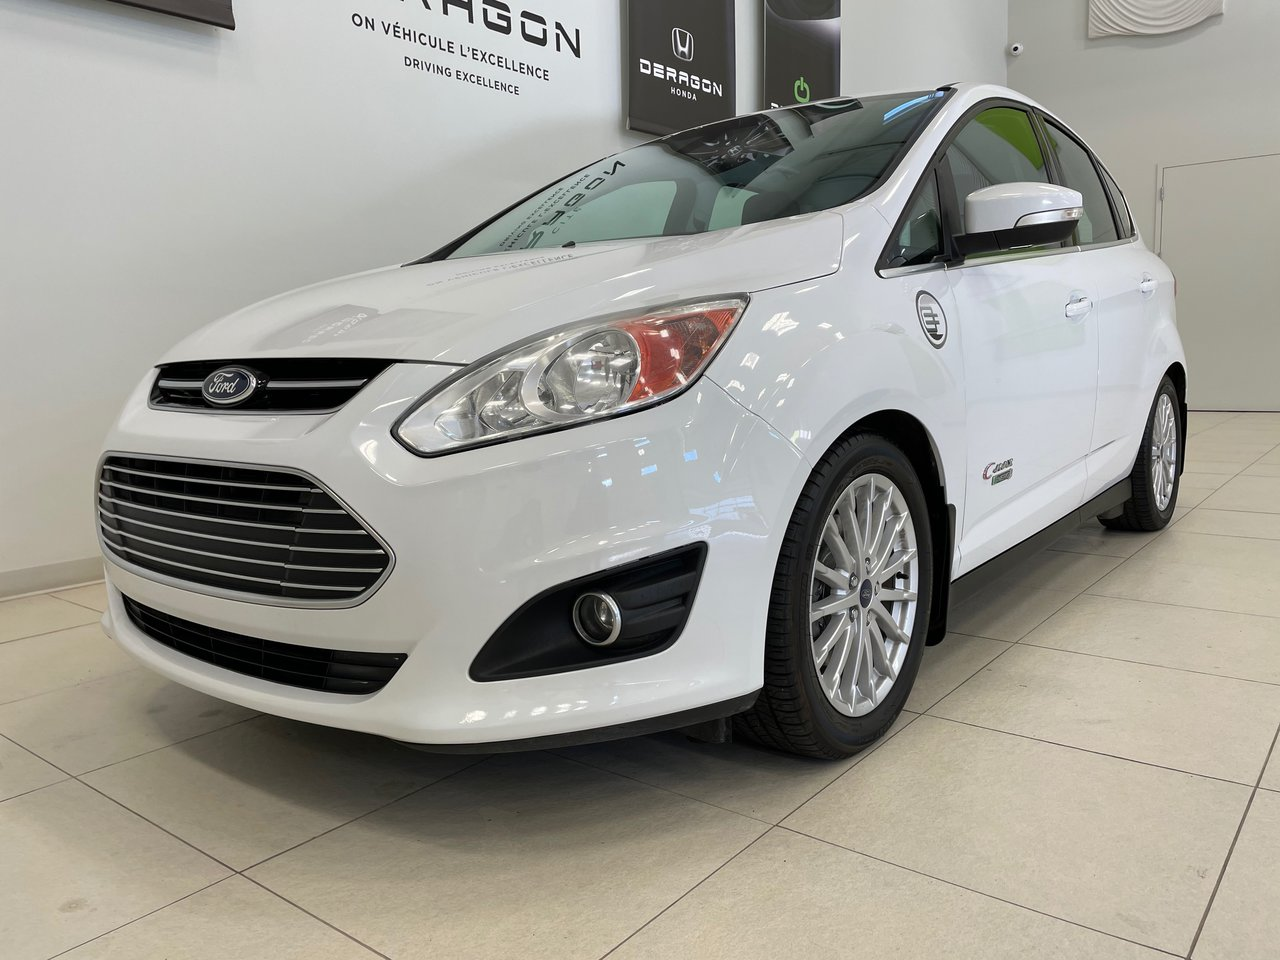 Ford C-Max 2016 SEL HYBRID PLUG-IN, CUIR, AUTOMATIQUE, ROUES